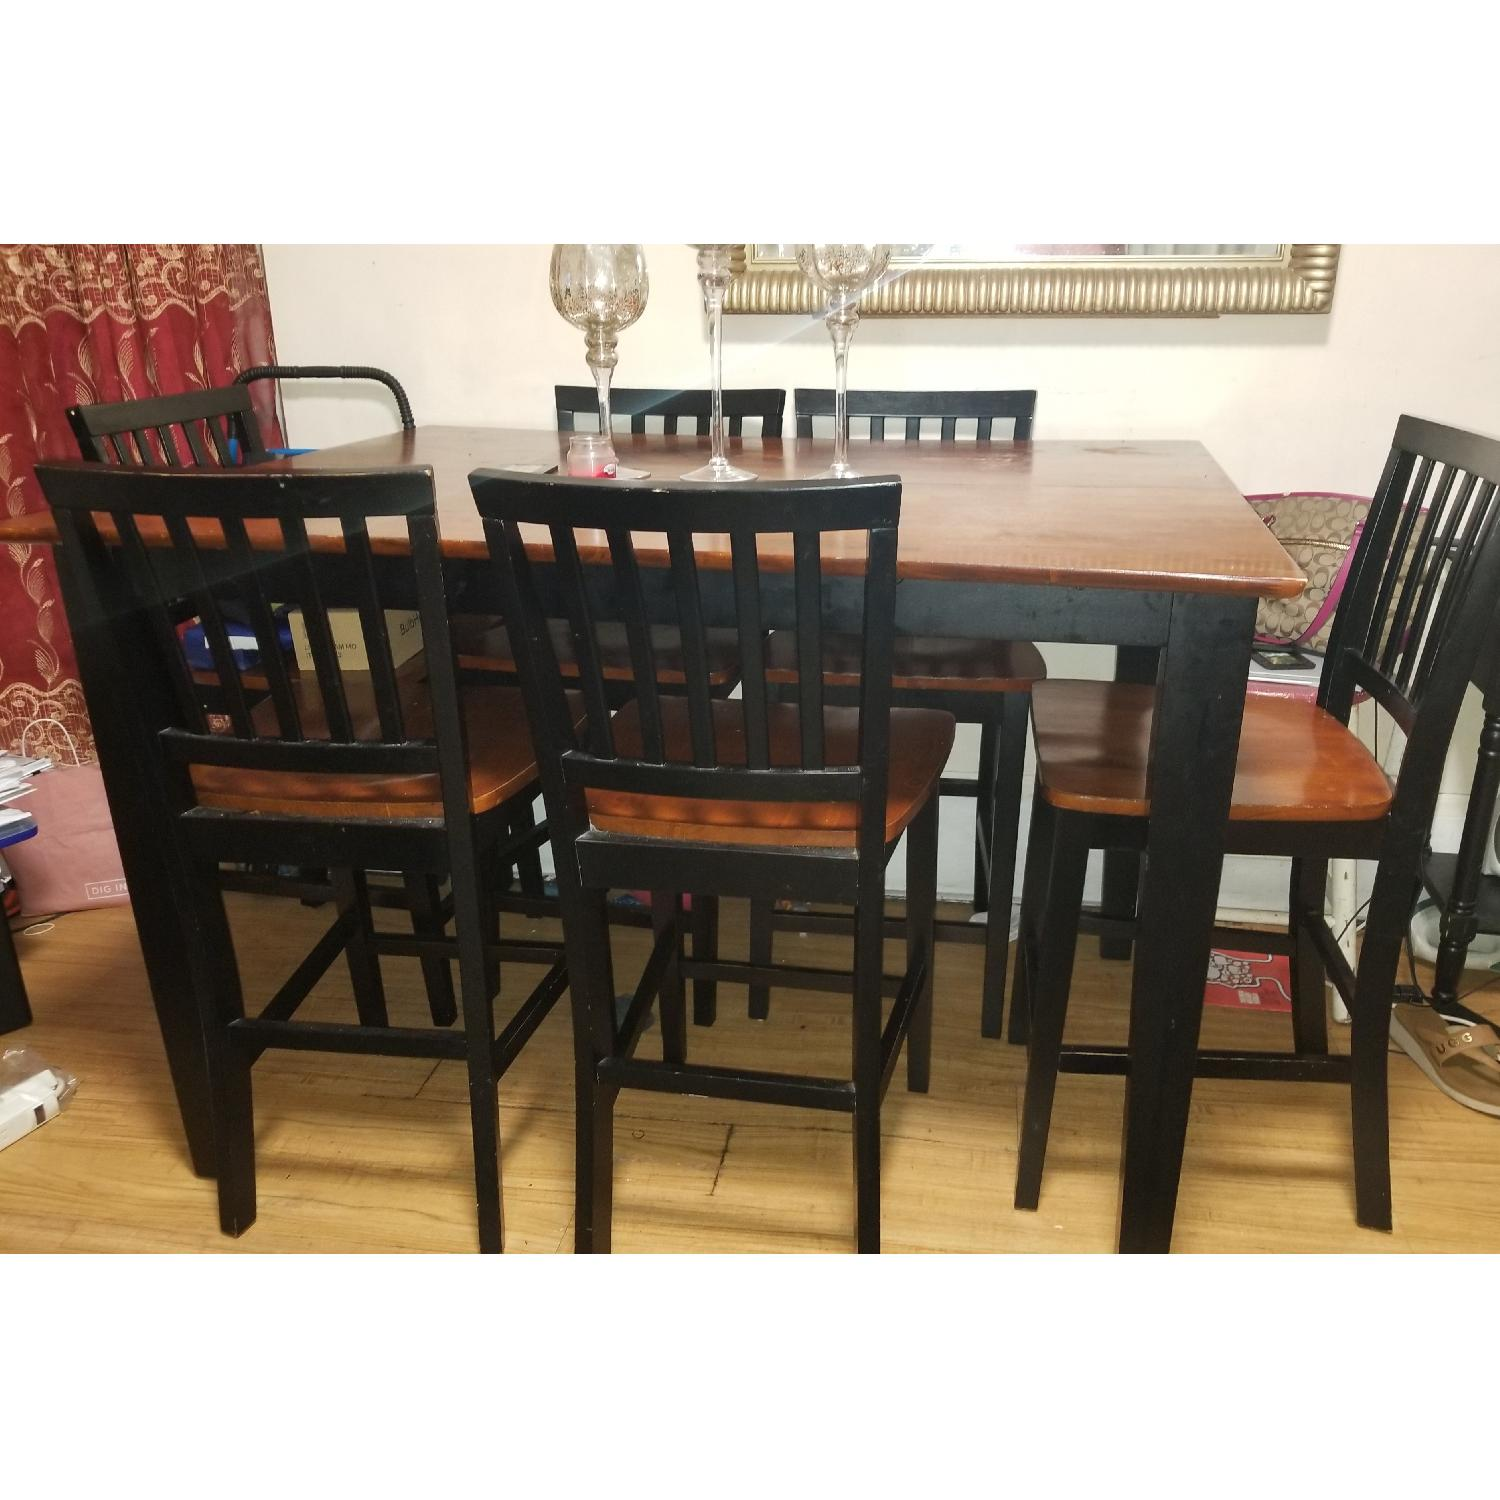 Bob's Montibello Dining Table w/ 6 Chairs - image-1